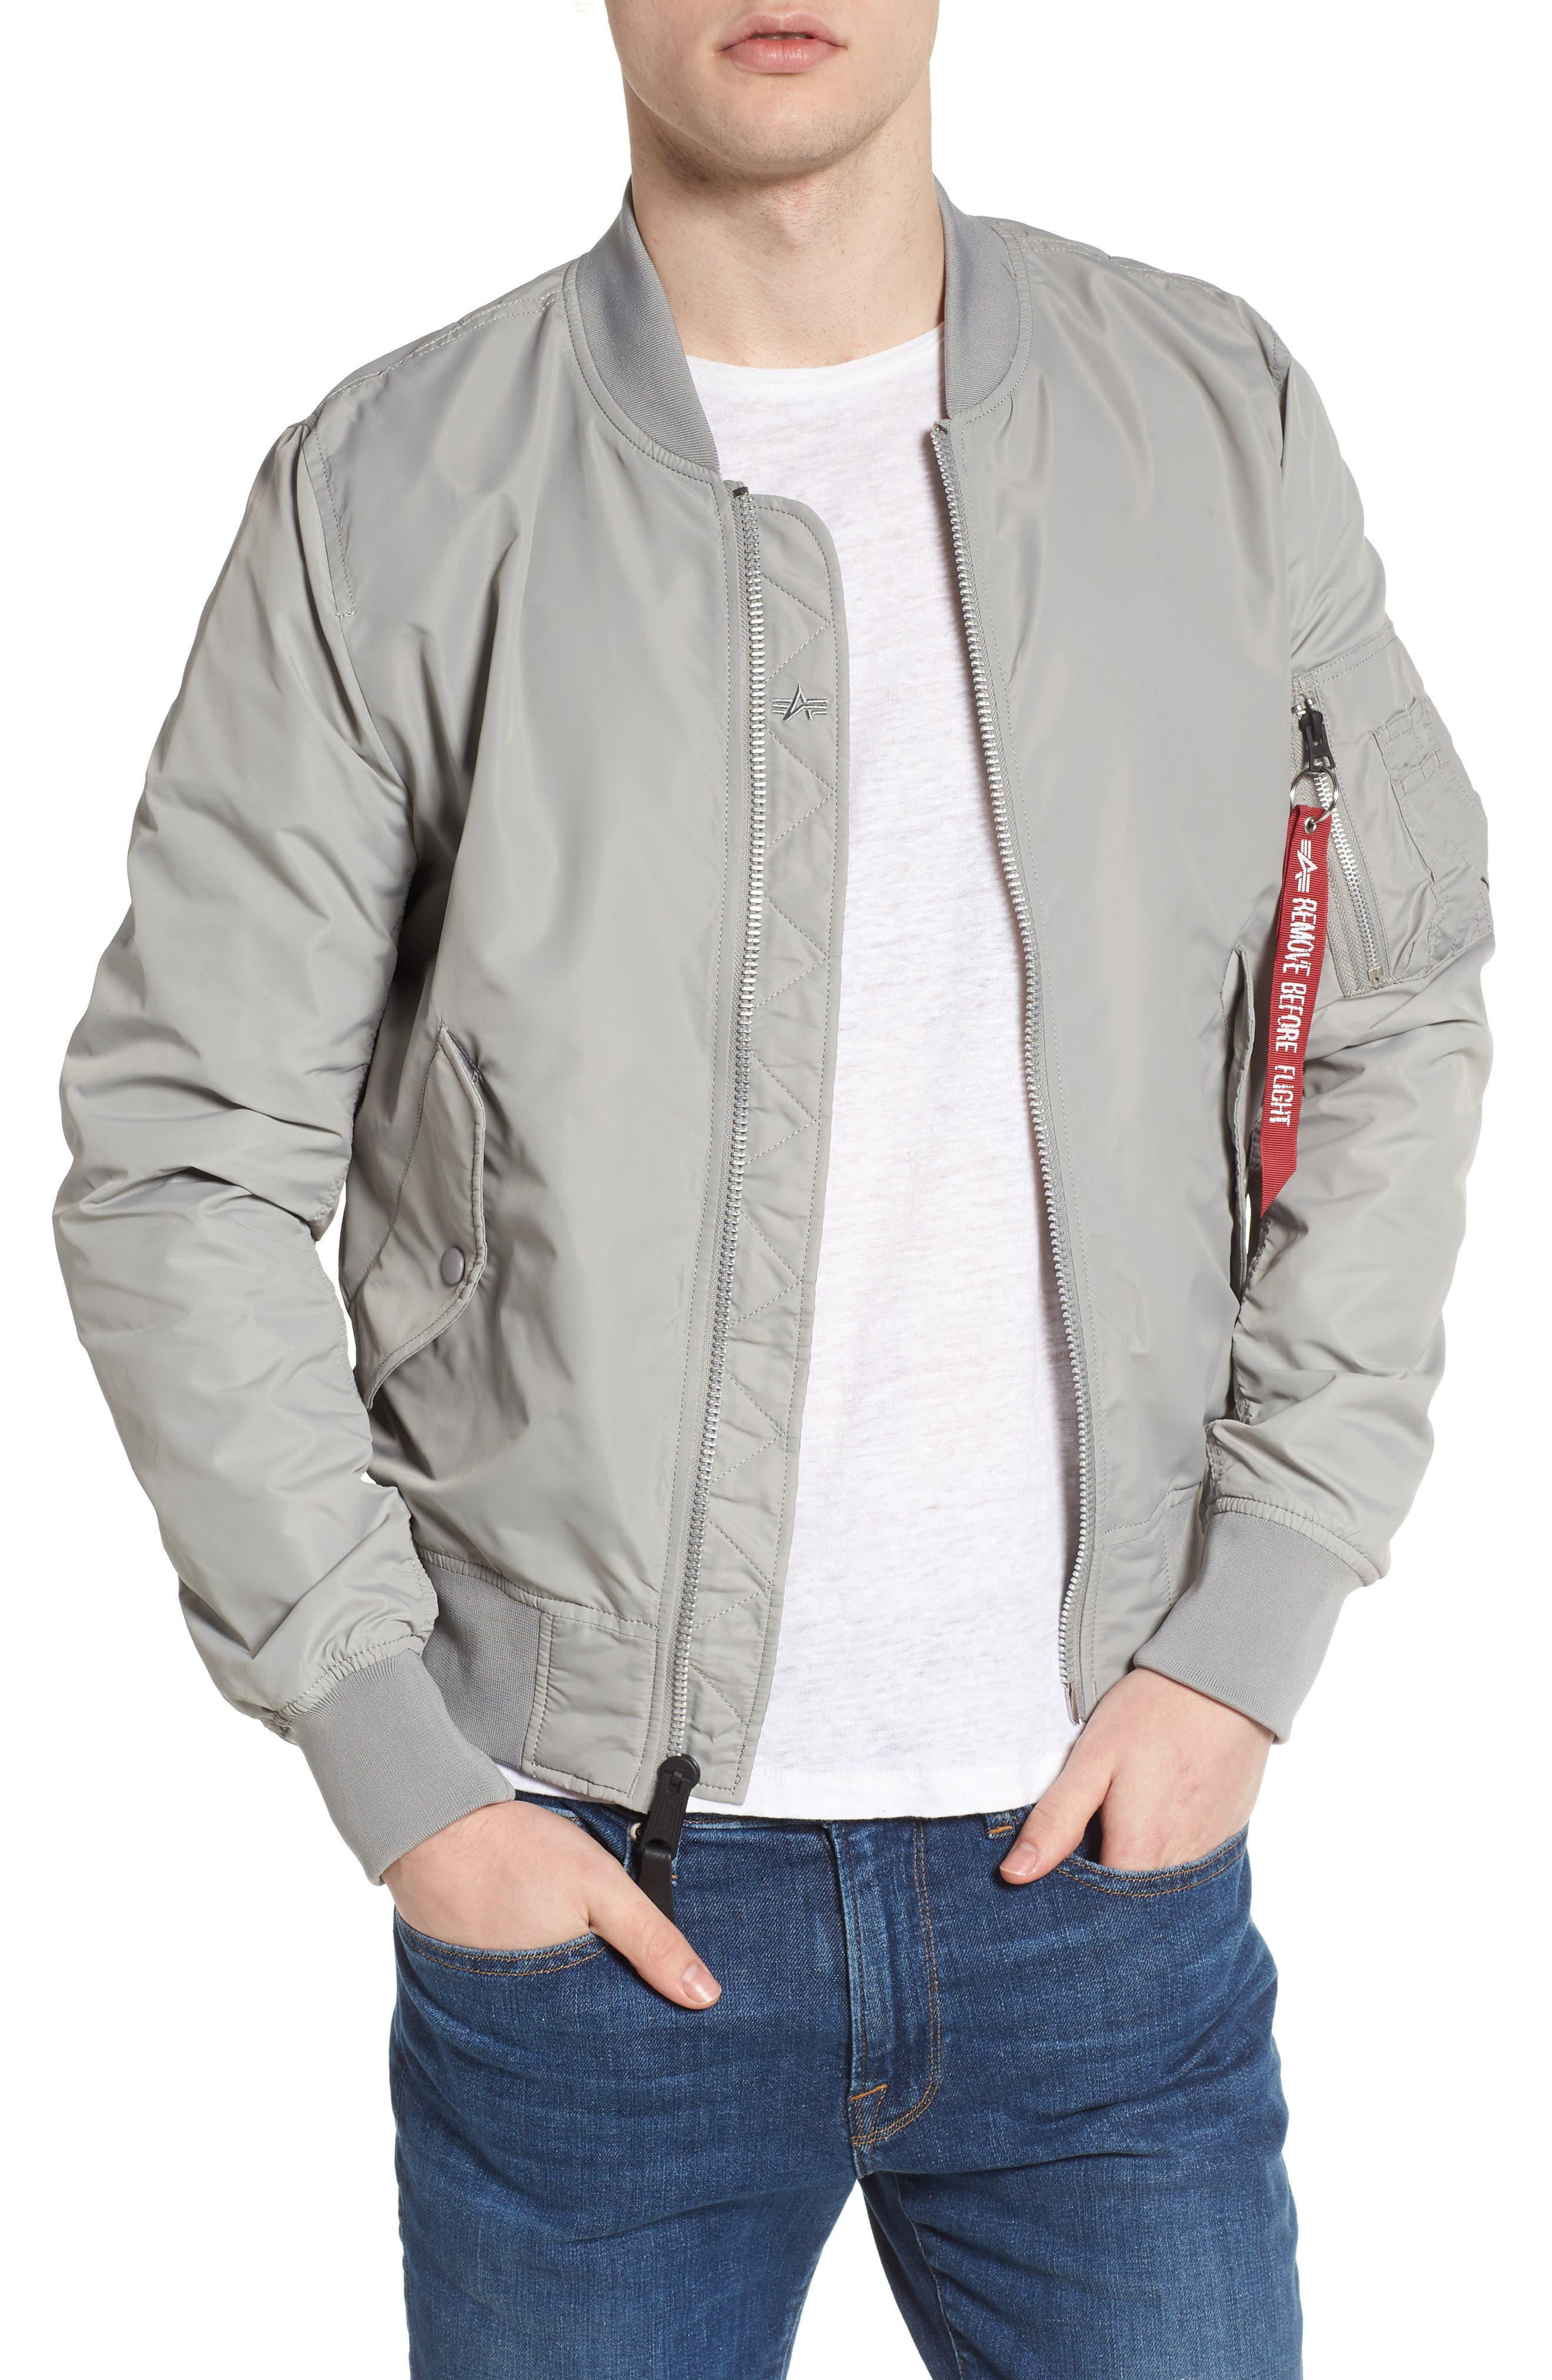 LB-2 Scout Reversible Flight Jacket,                             Main thumbnail 1, color,